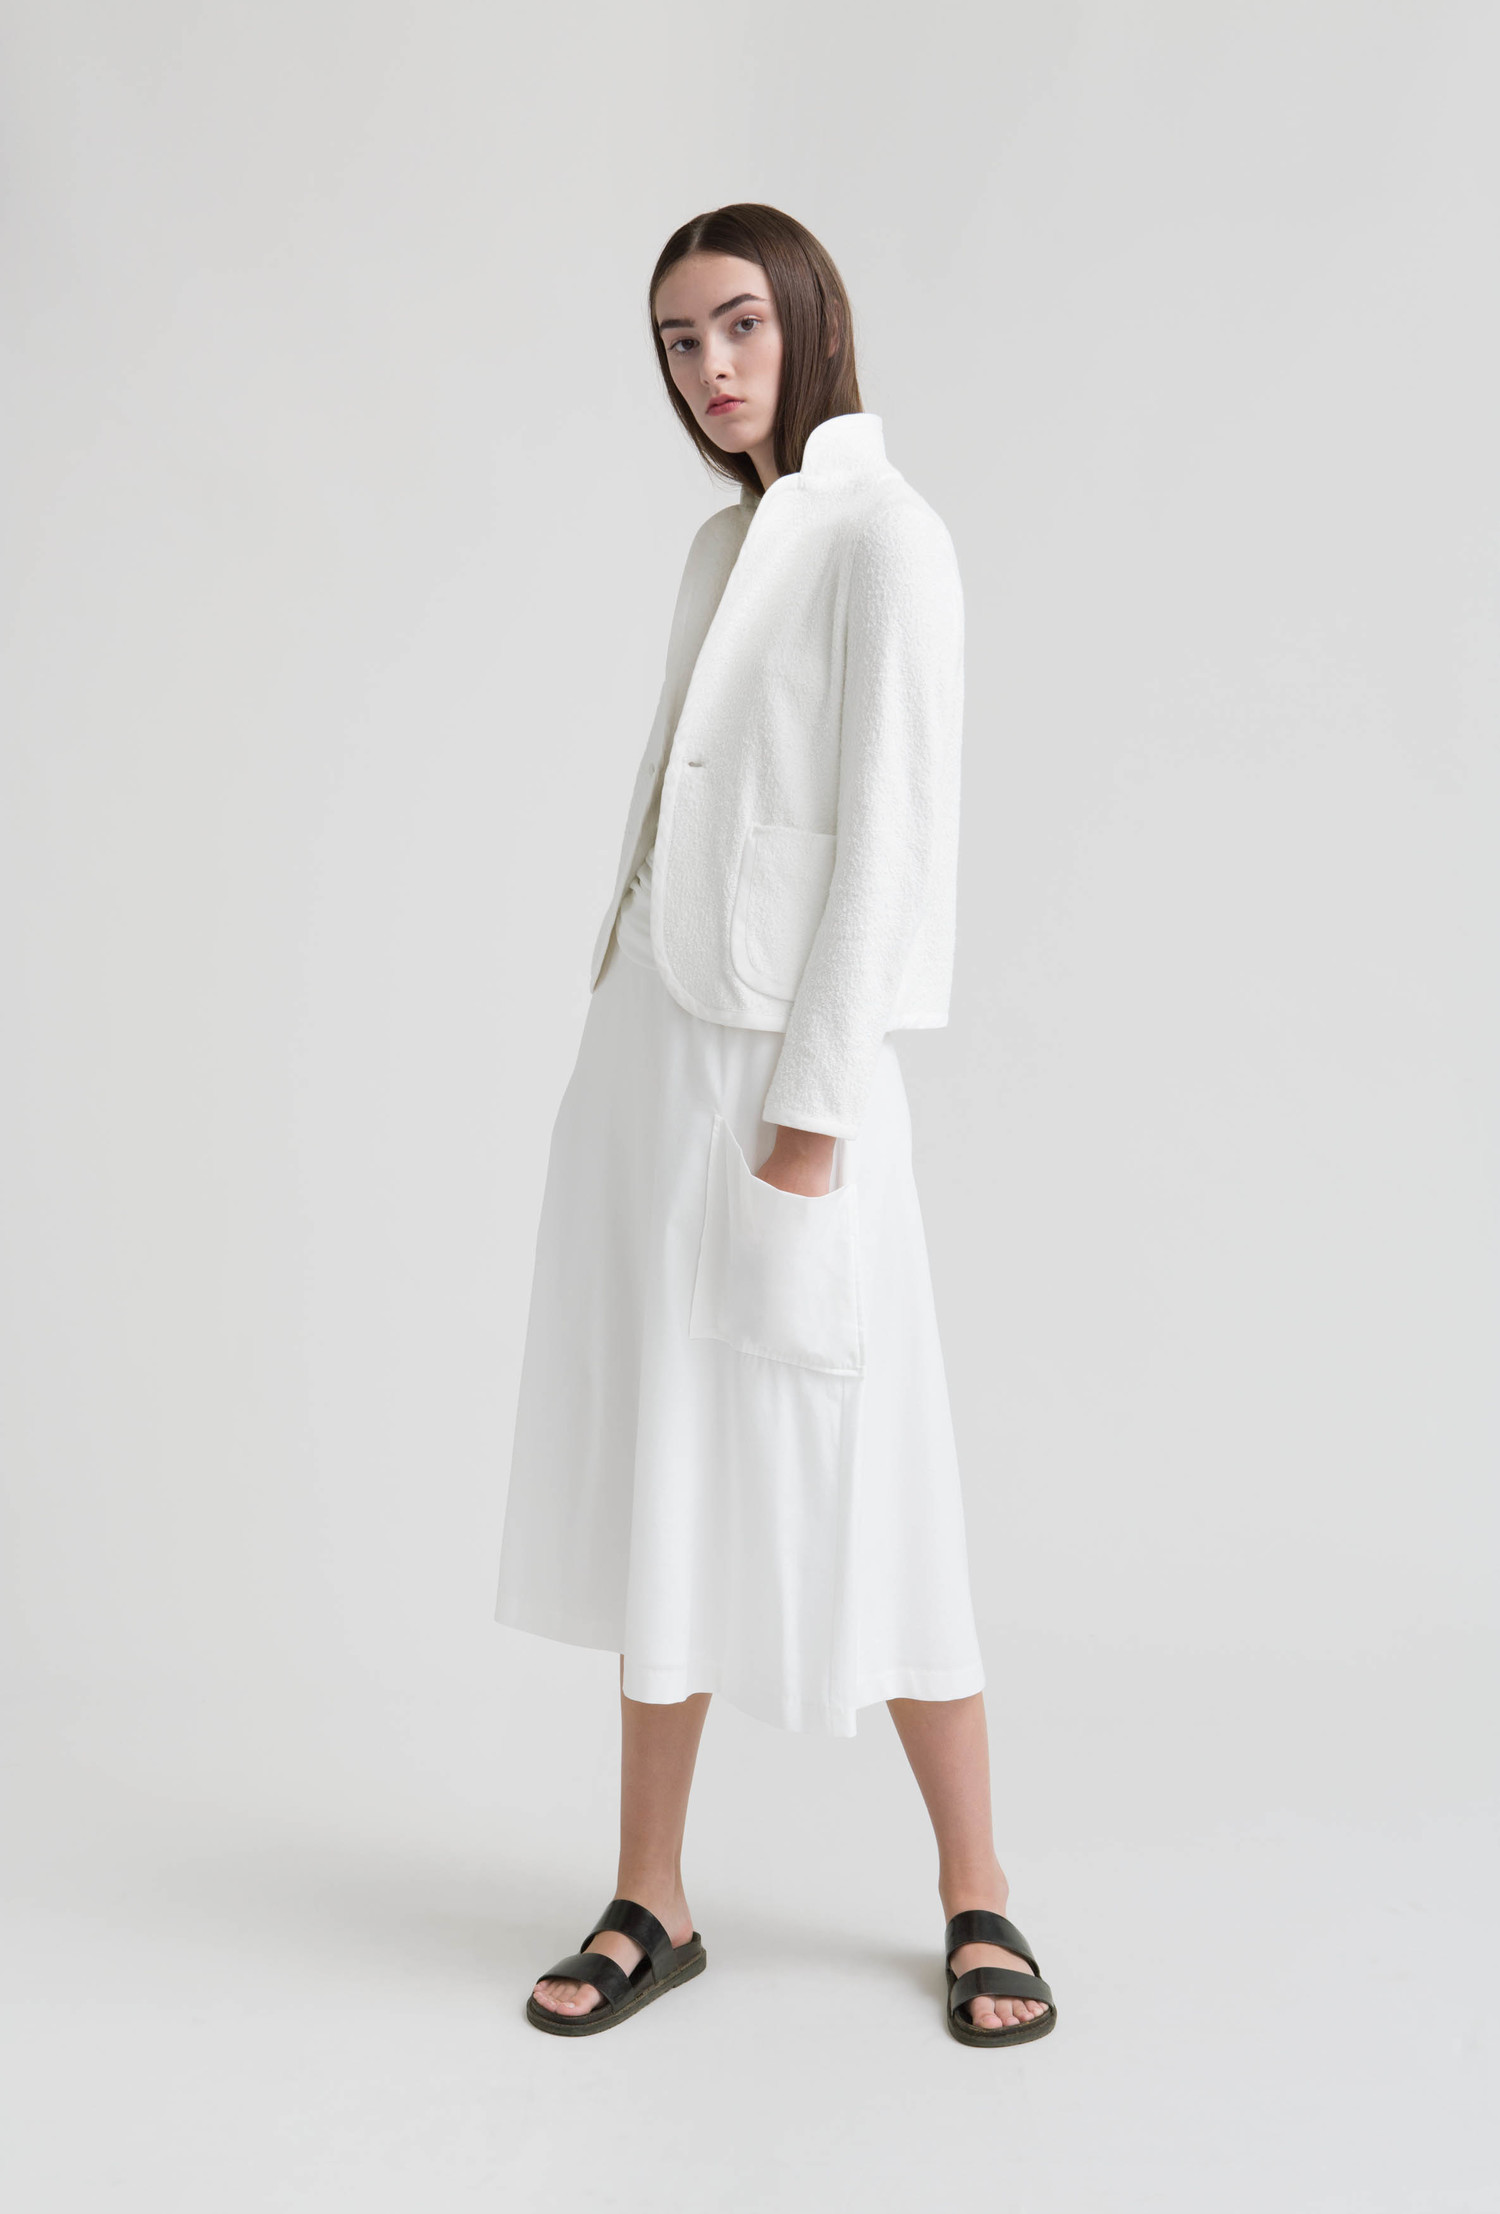 OuurMedia_OuurCollectionSS15_07.jpg